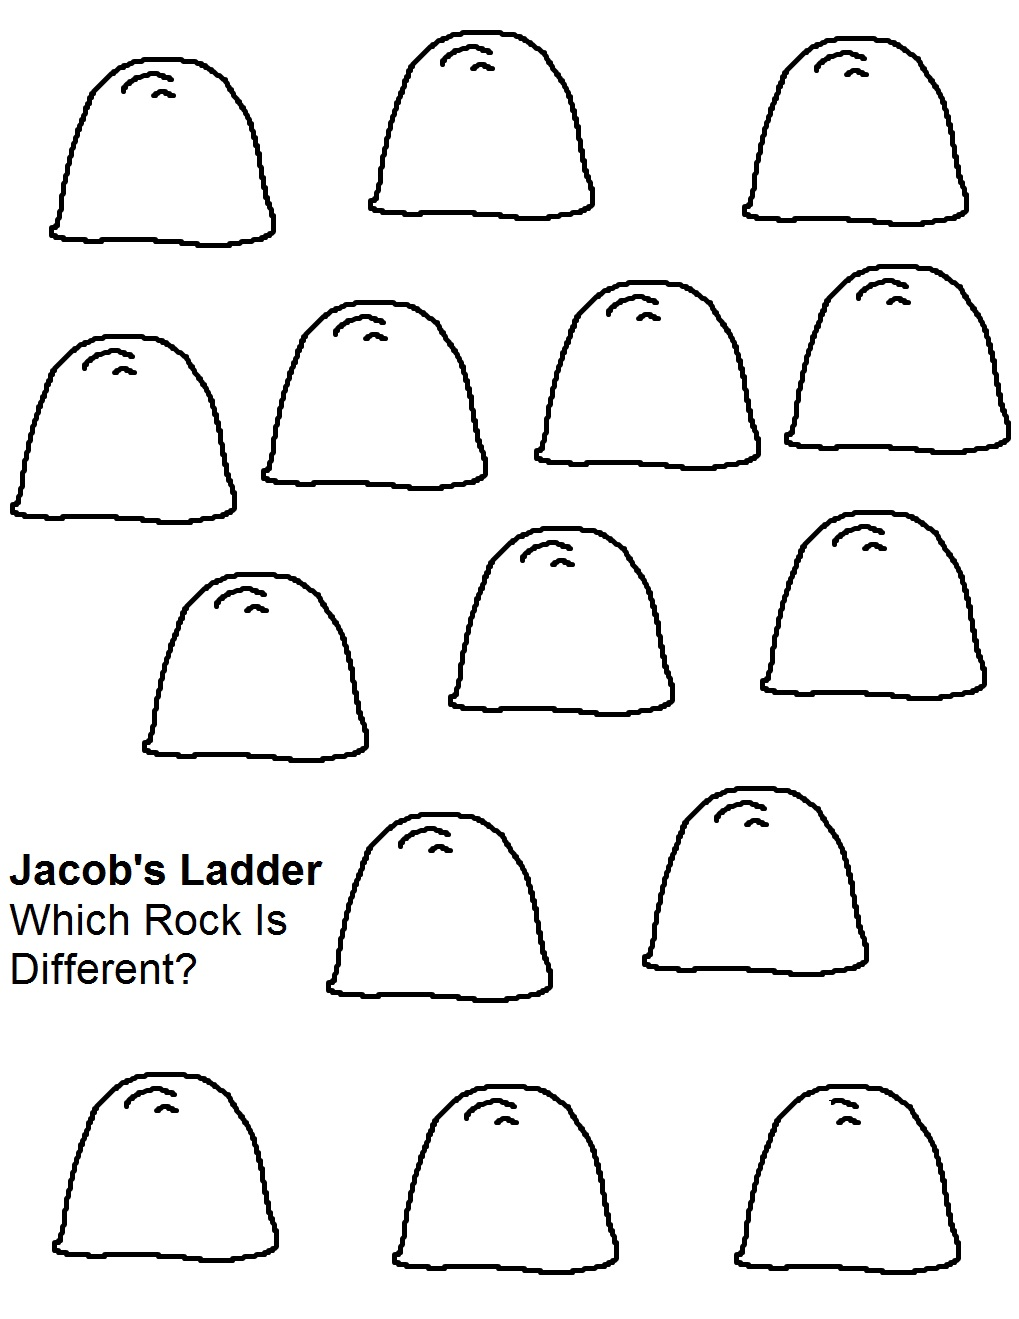 Jacob's Ladder Sunday School Lesson